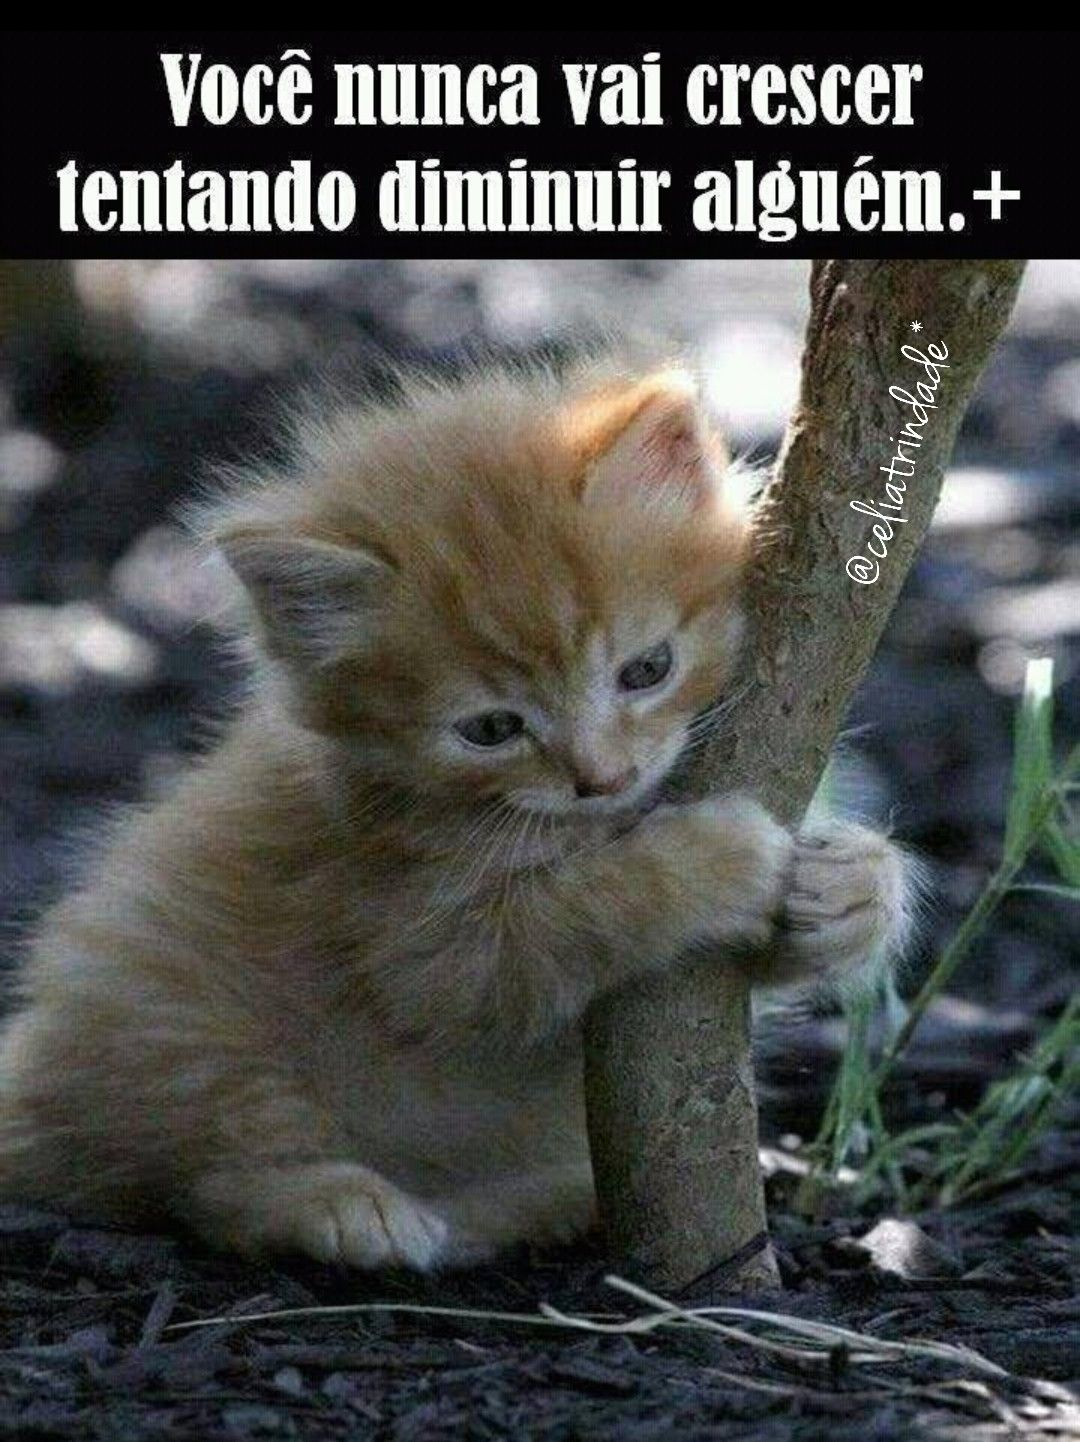 Pin By Celia Trindade On Jesus Kittens Cutest Cats And Kittens Cats